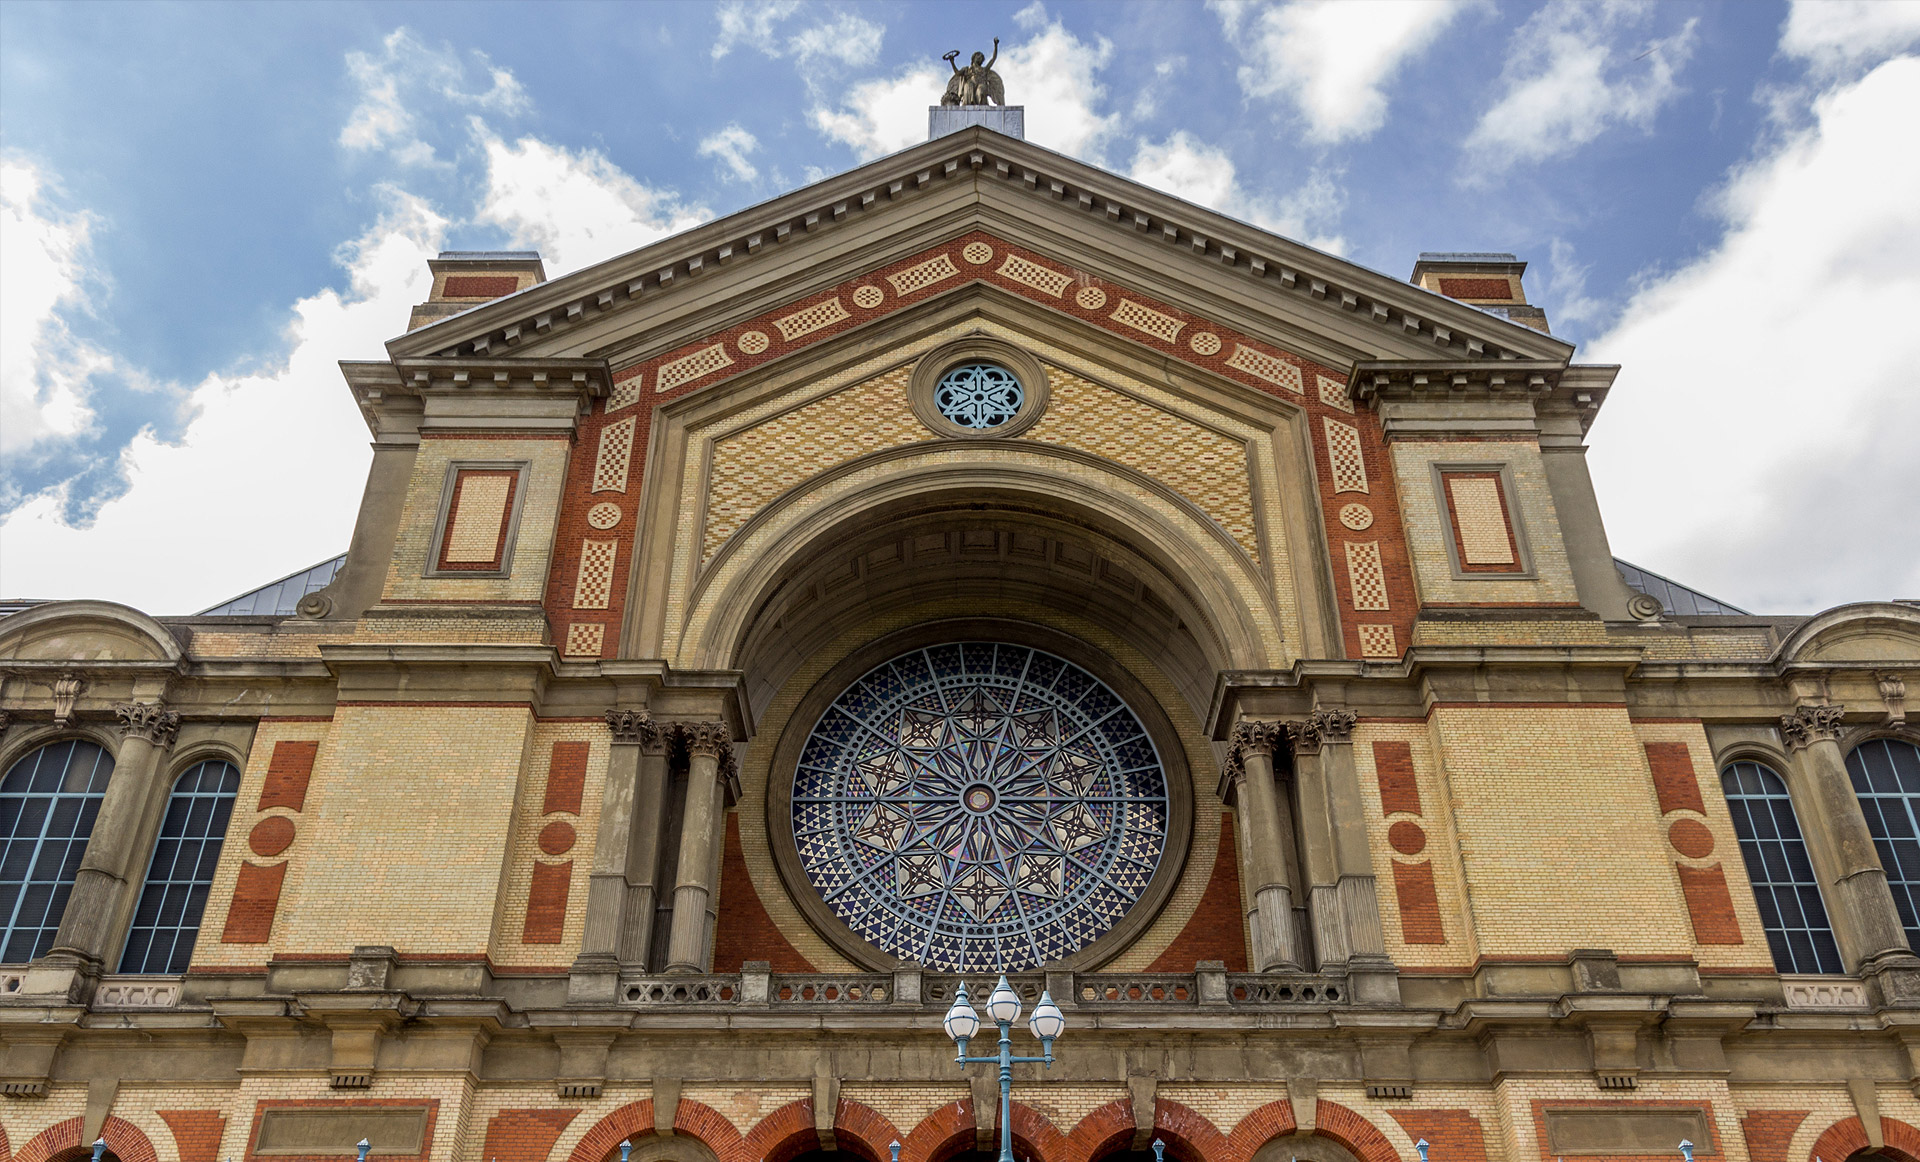 Visiting the Alexandra Palace in London